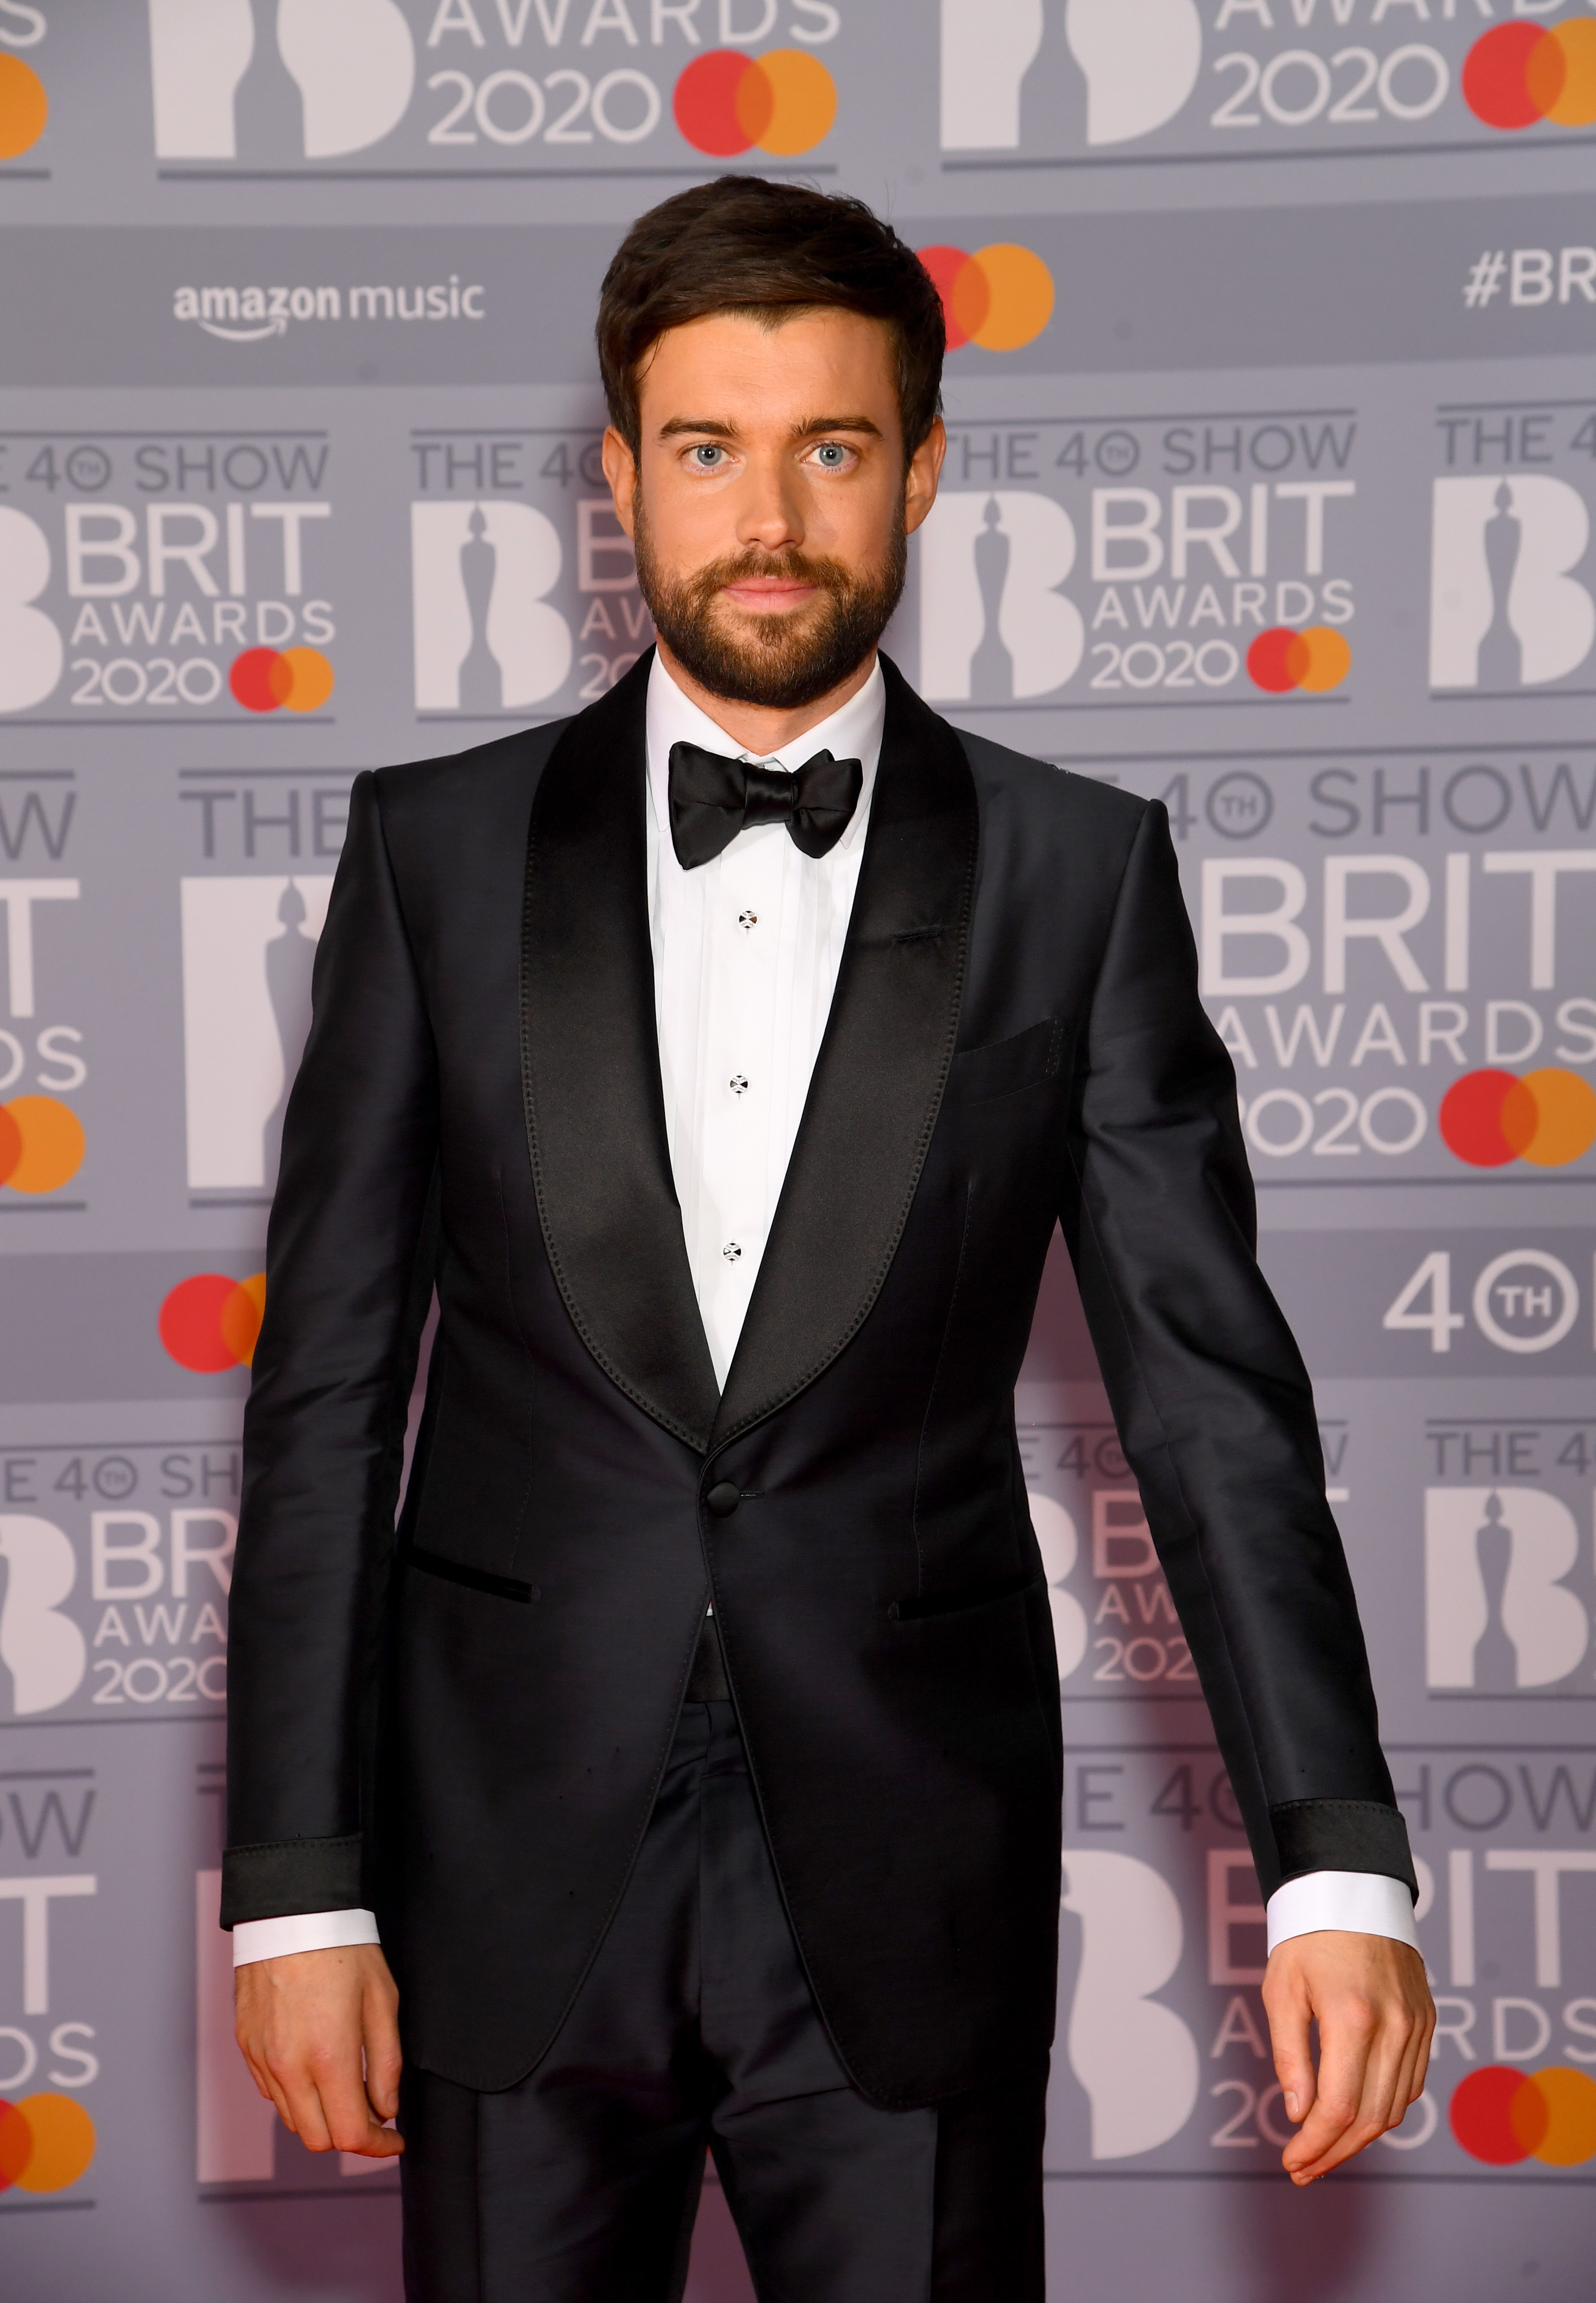 Jack Whitehall attends The BRIT Awards 2020 at The O2 Arena on February 18, 2020 in London, England. (Photo by Dave J Hogan/Getty Images)